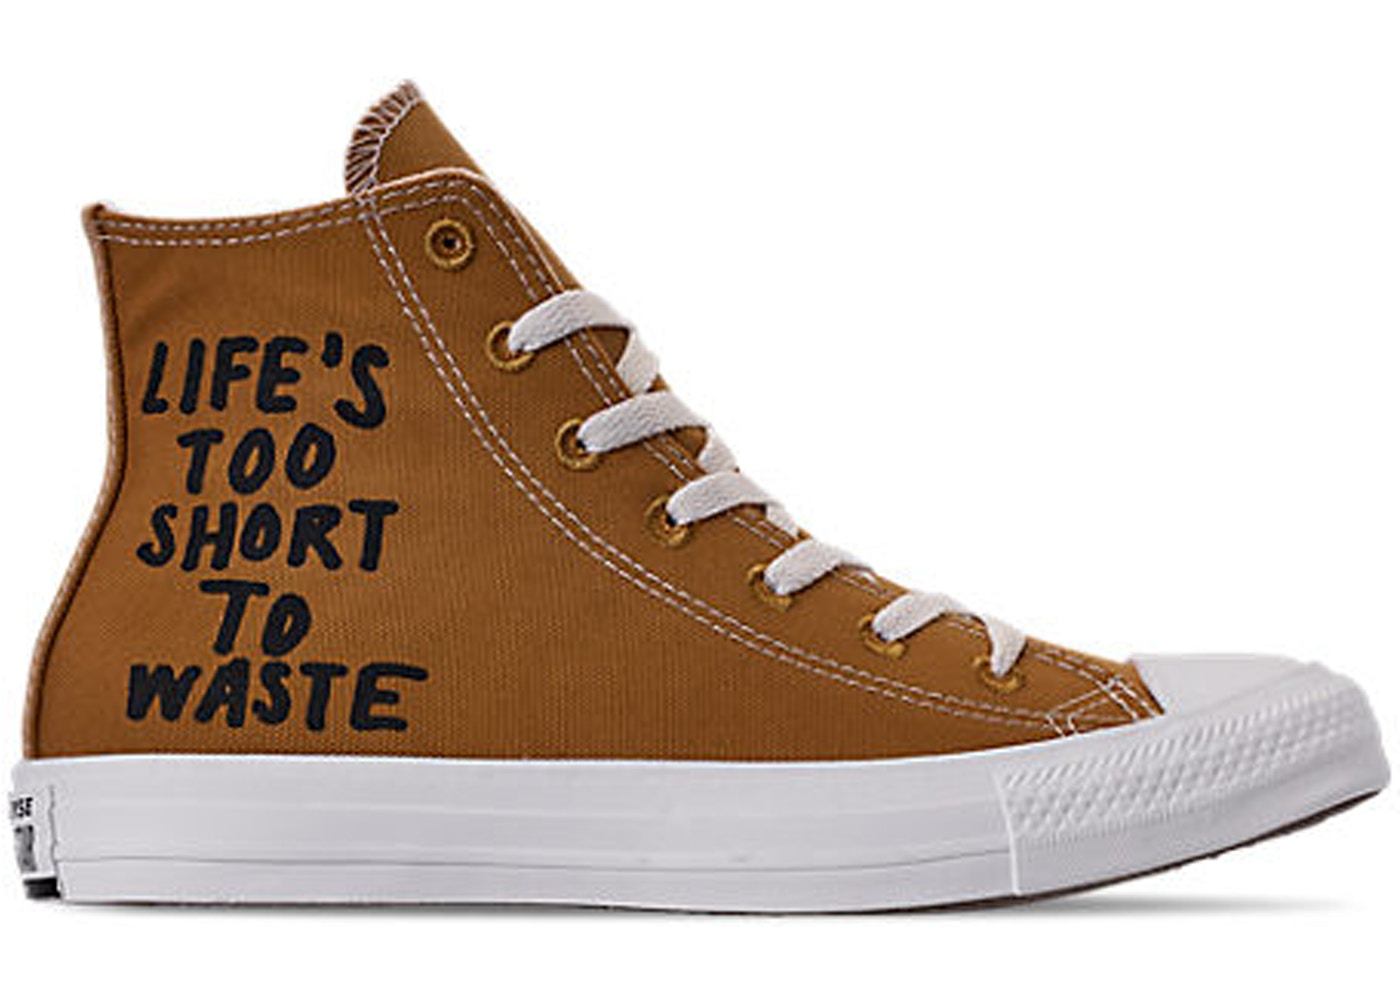 orden super barato se compara con nuevo autentico Converse Chuck Taylor All-Star Renew Hi Wheat - 164918C